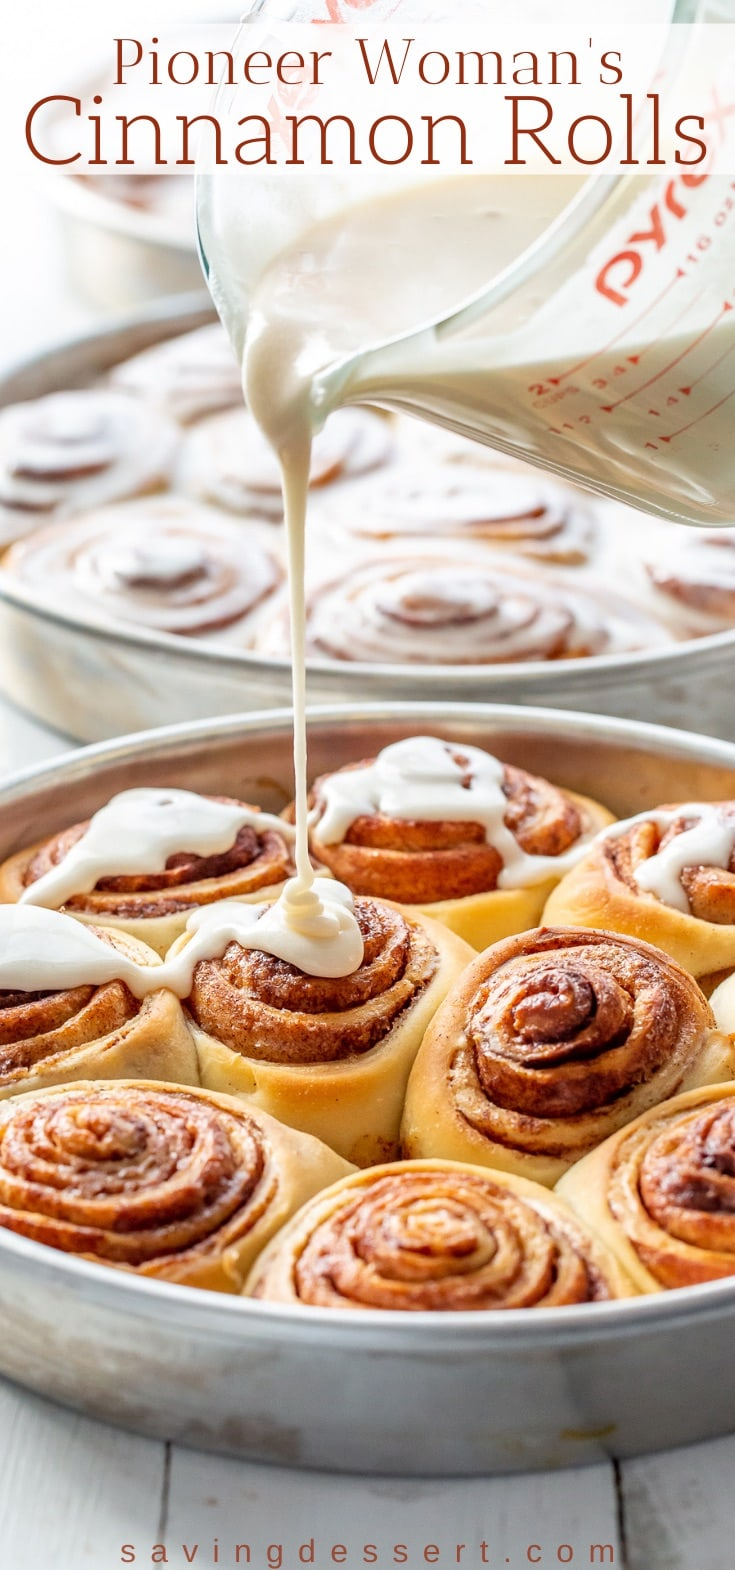 A pan of fresh baked cinnamon rolls being drizzled with icing